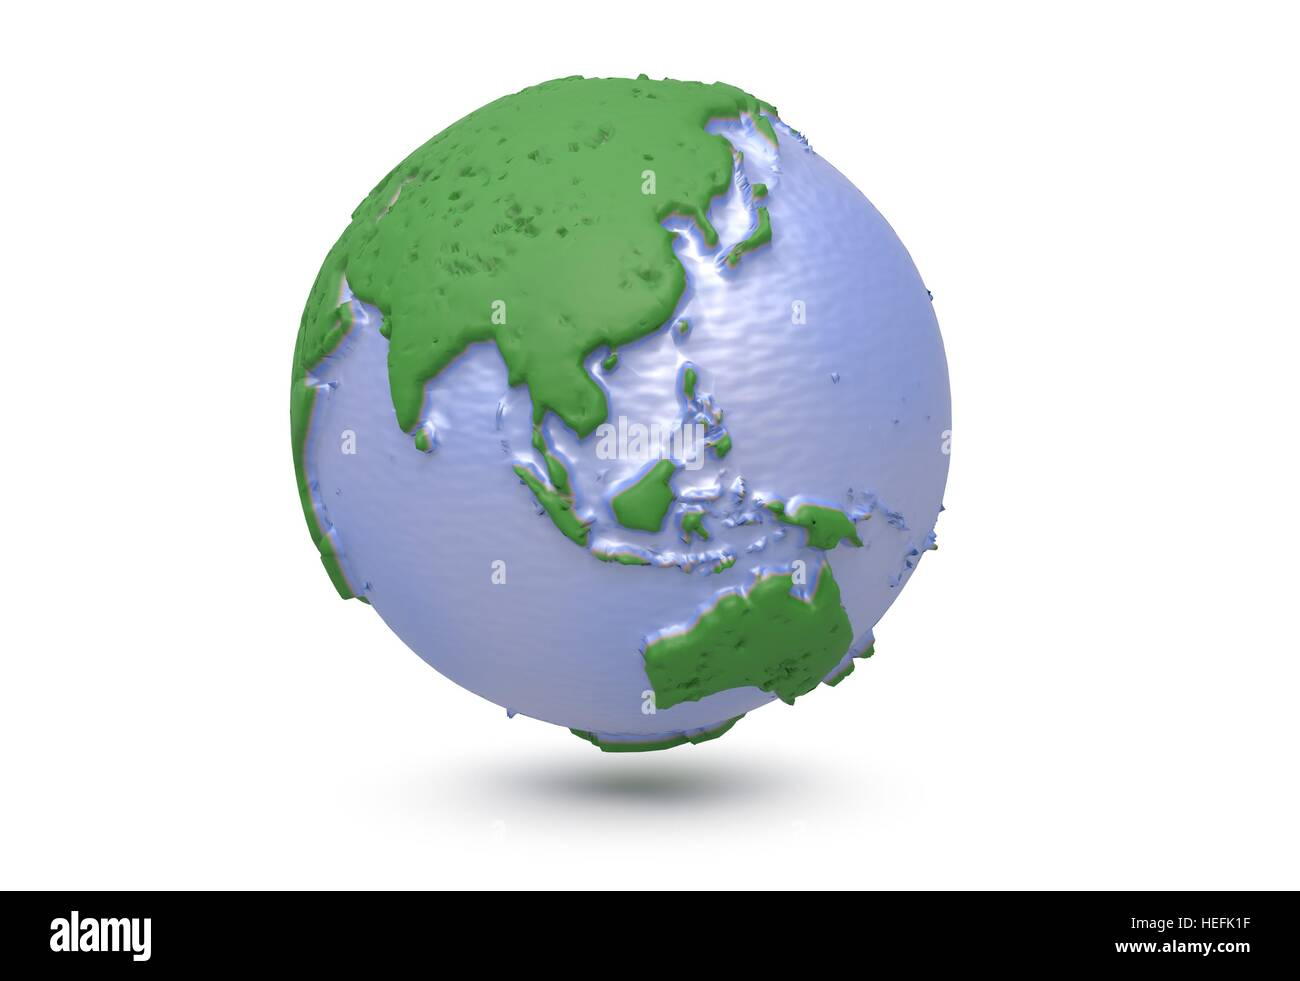 Earth world map polygonal globe asia 3d illustration stock photo earth world map polygonal globe asia 3d illustration gumiabroncs Image collections